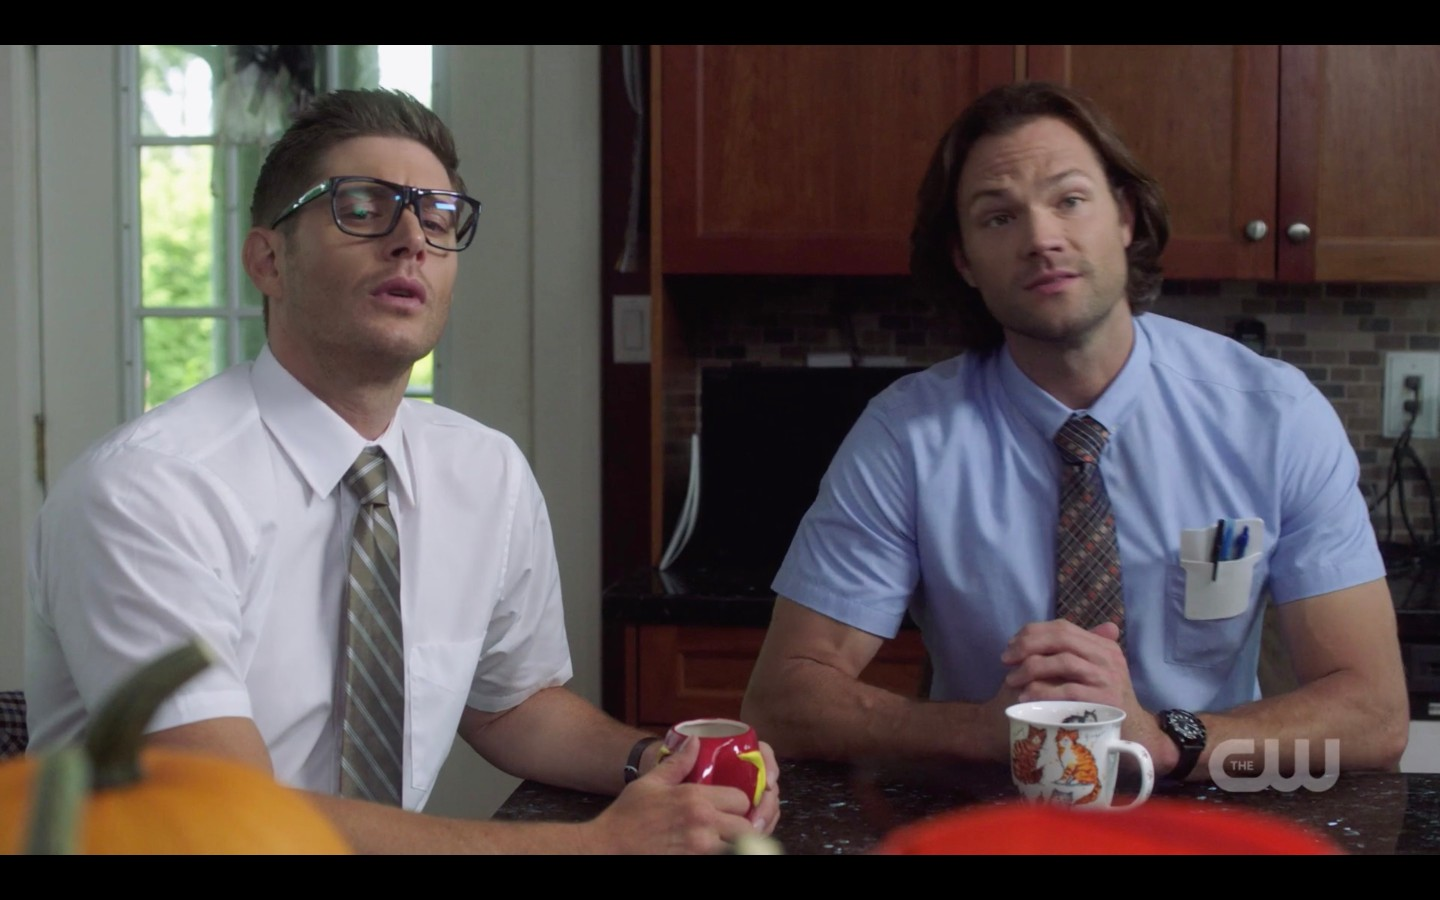 dean blow mouth for dean winchester dork look 1404